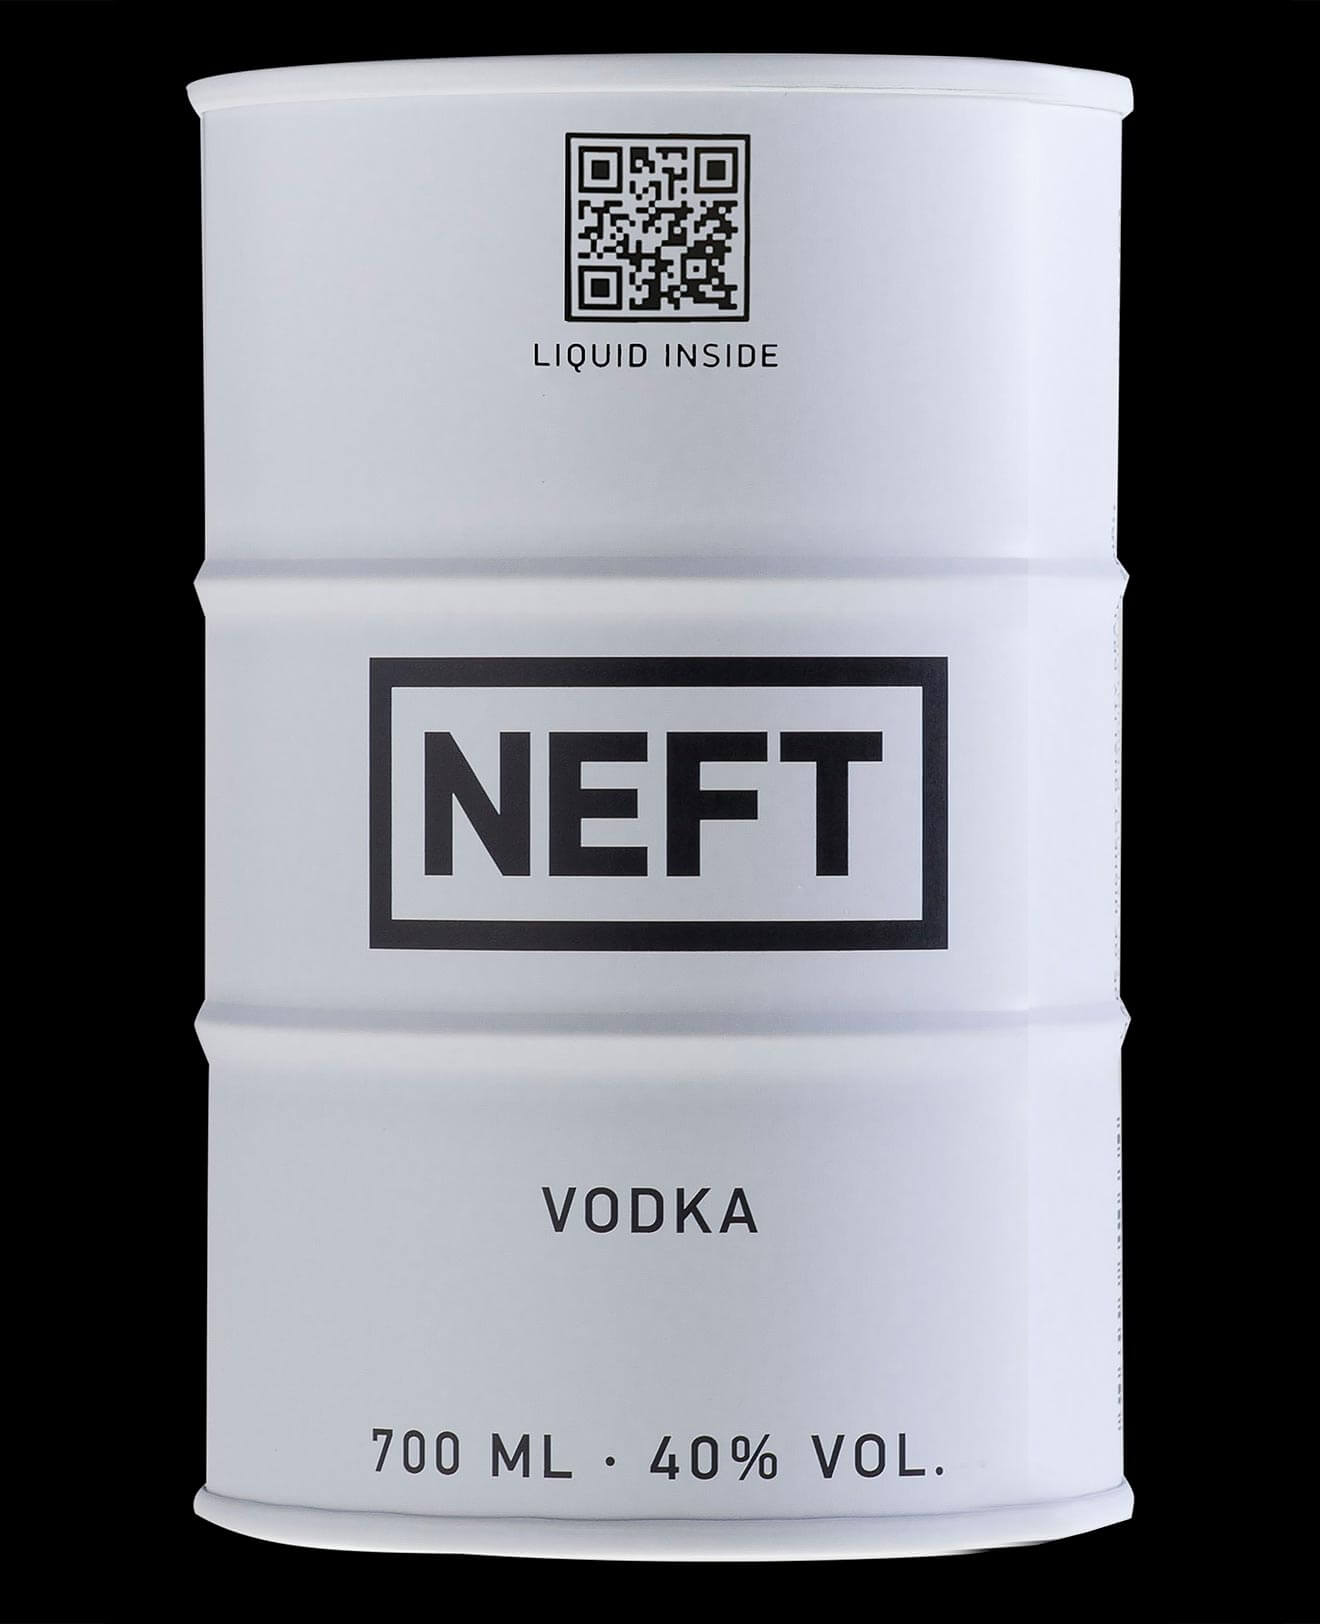 NEFT Vodka, white barrel on black